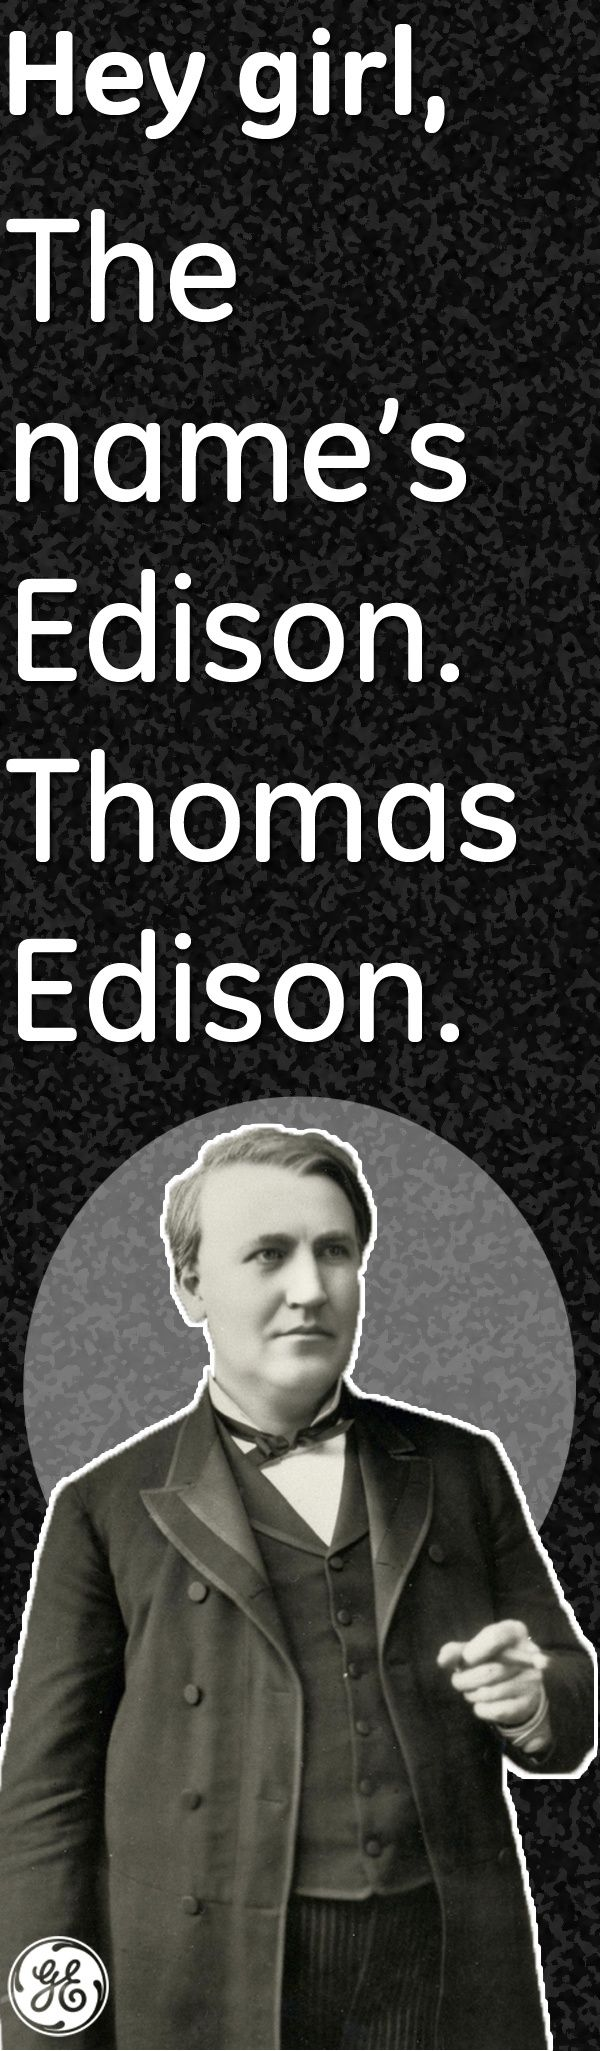 hey girl edison 2